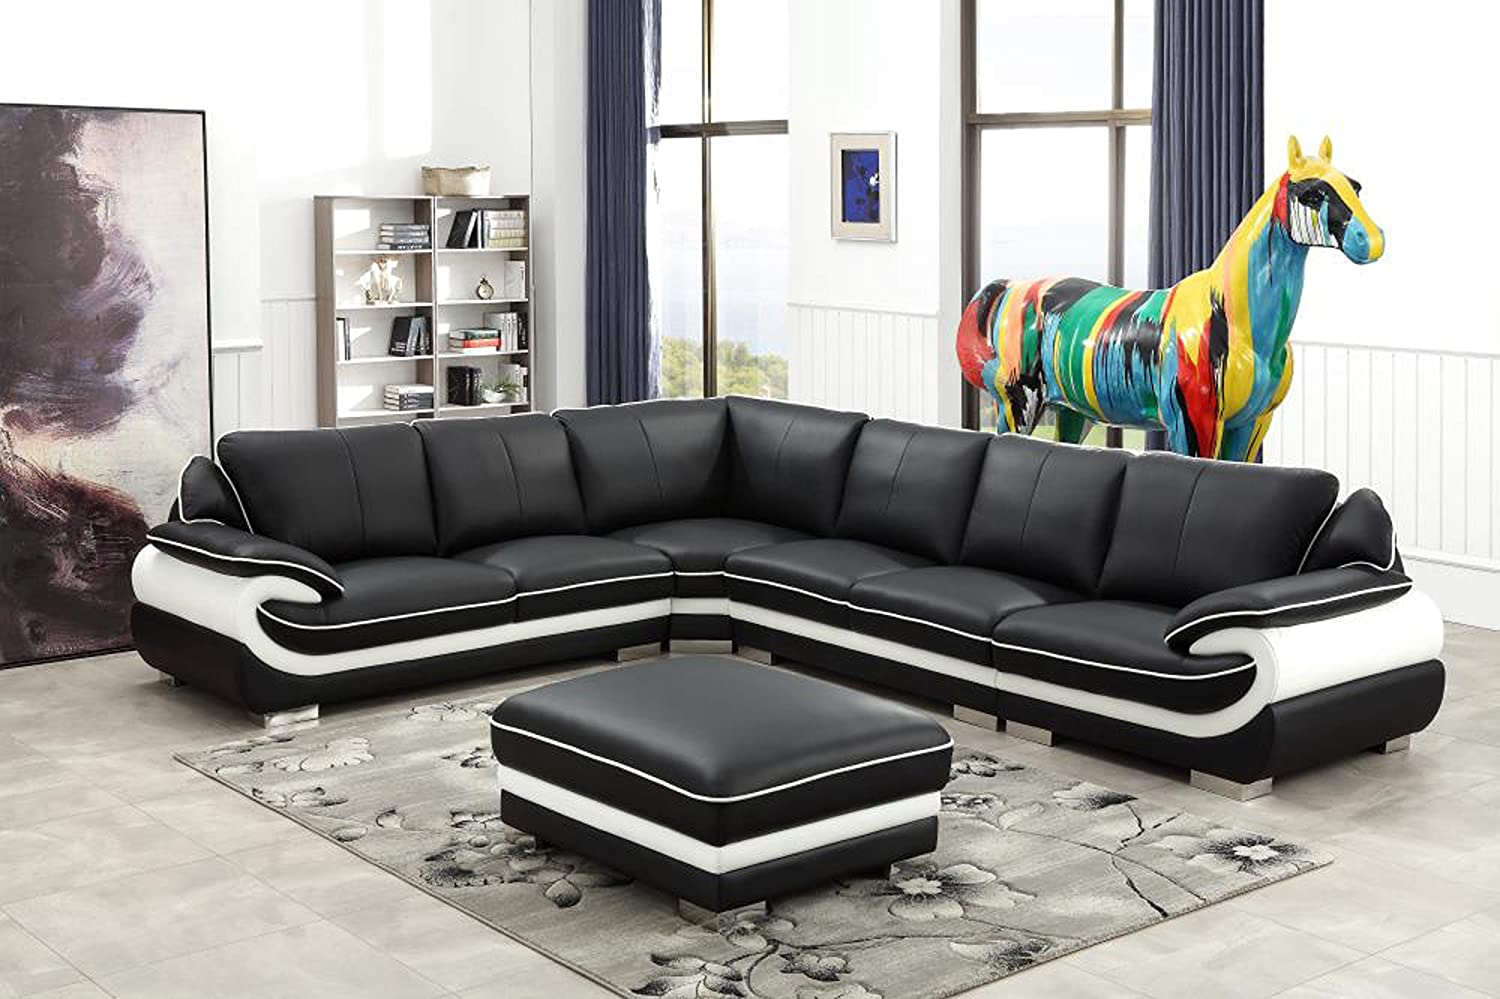 Amazon com oakland living t777b sec otto bk black and white contemporary real leather furniture ottoman modern sectional living room set large kitchen